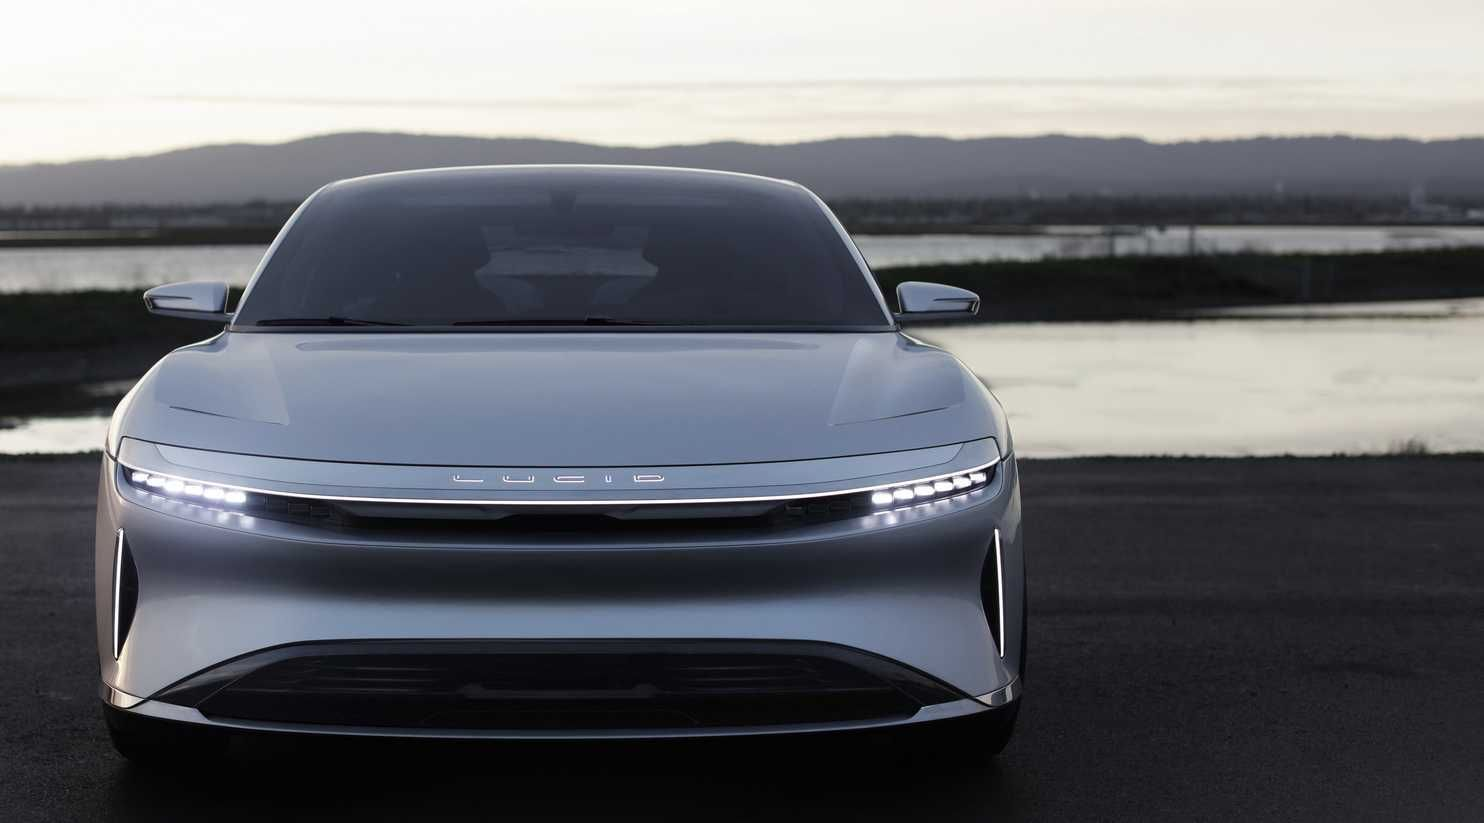 This Car Promises To Be Fully Electric And Drive Itself Will That Be Enough Futuristic Cars Electric Cars Air Car